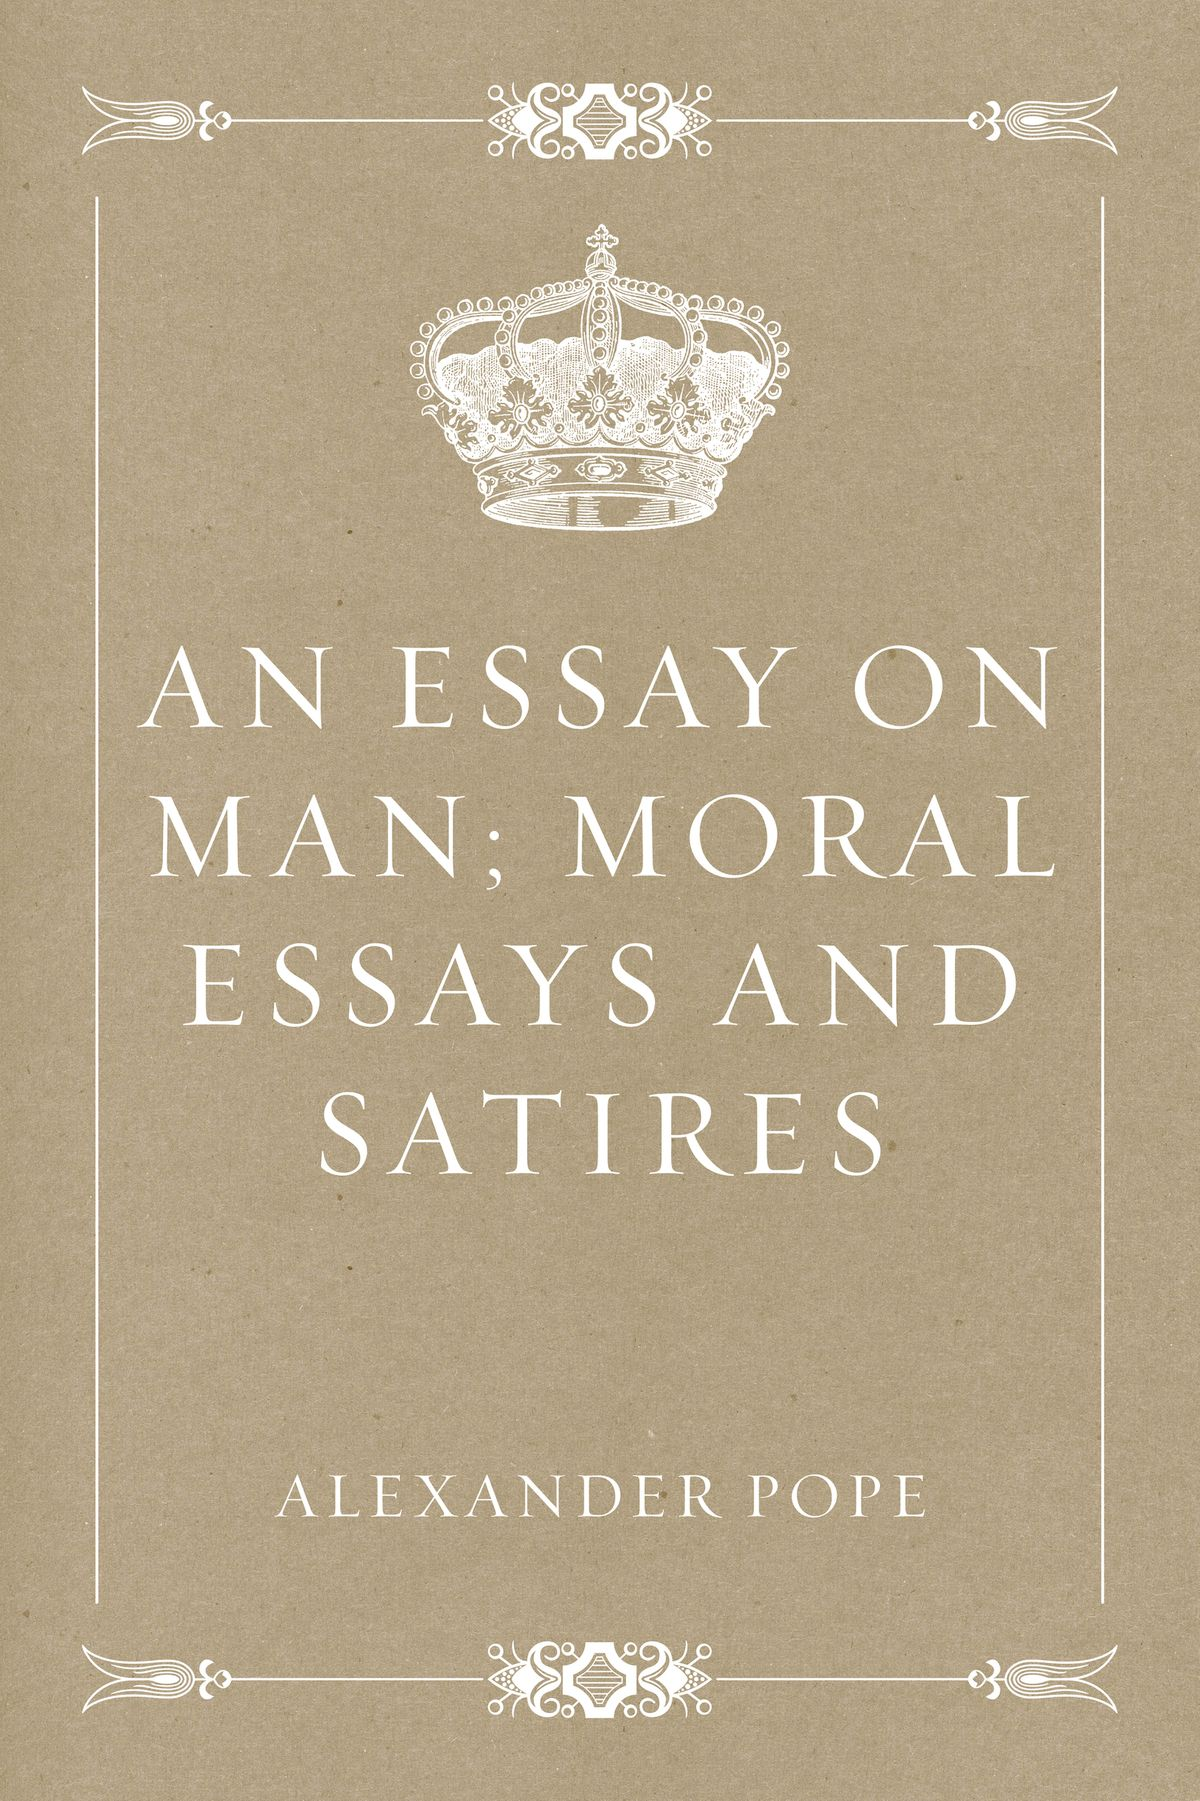 007 Essay Example An On Man Moral Essays And Satires Alexander Dreaded Pope Summary Epistle 2 Pdf Full